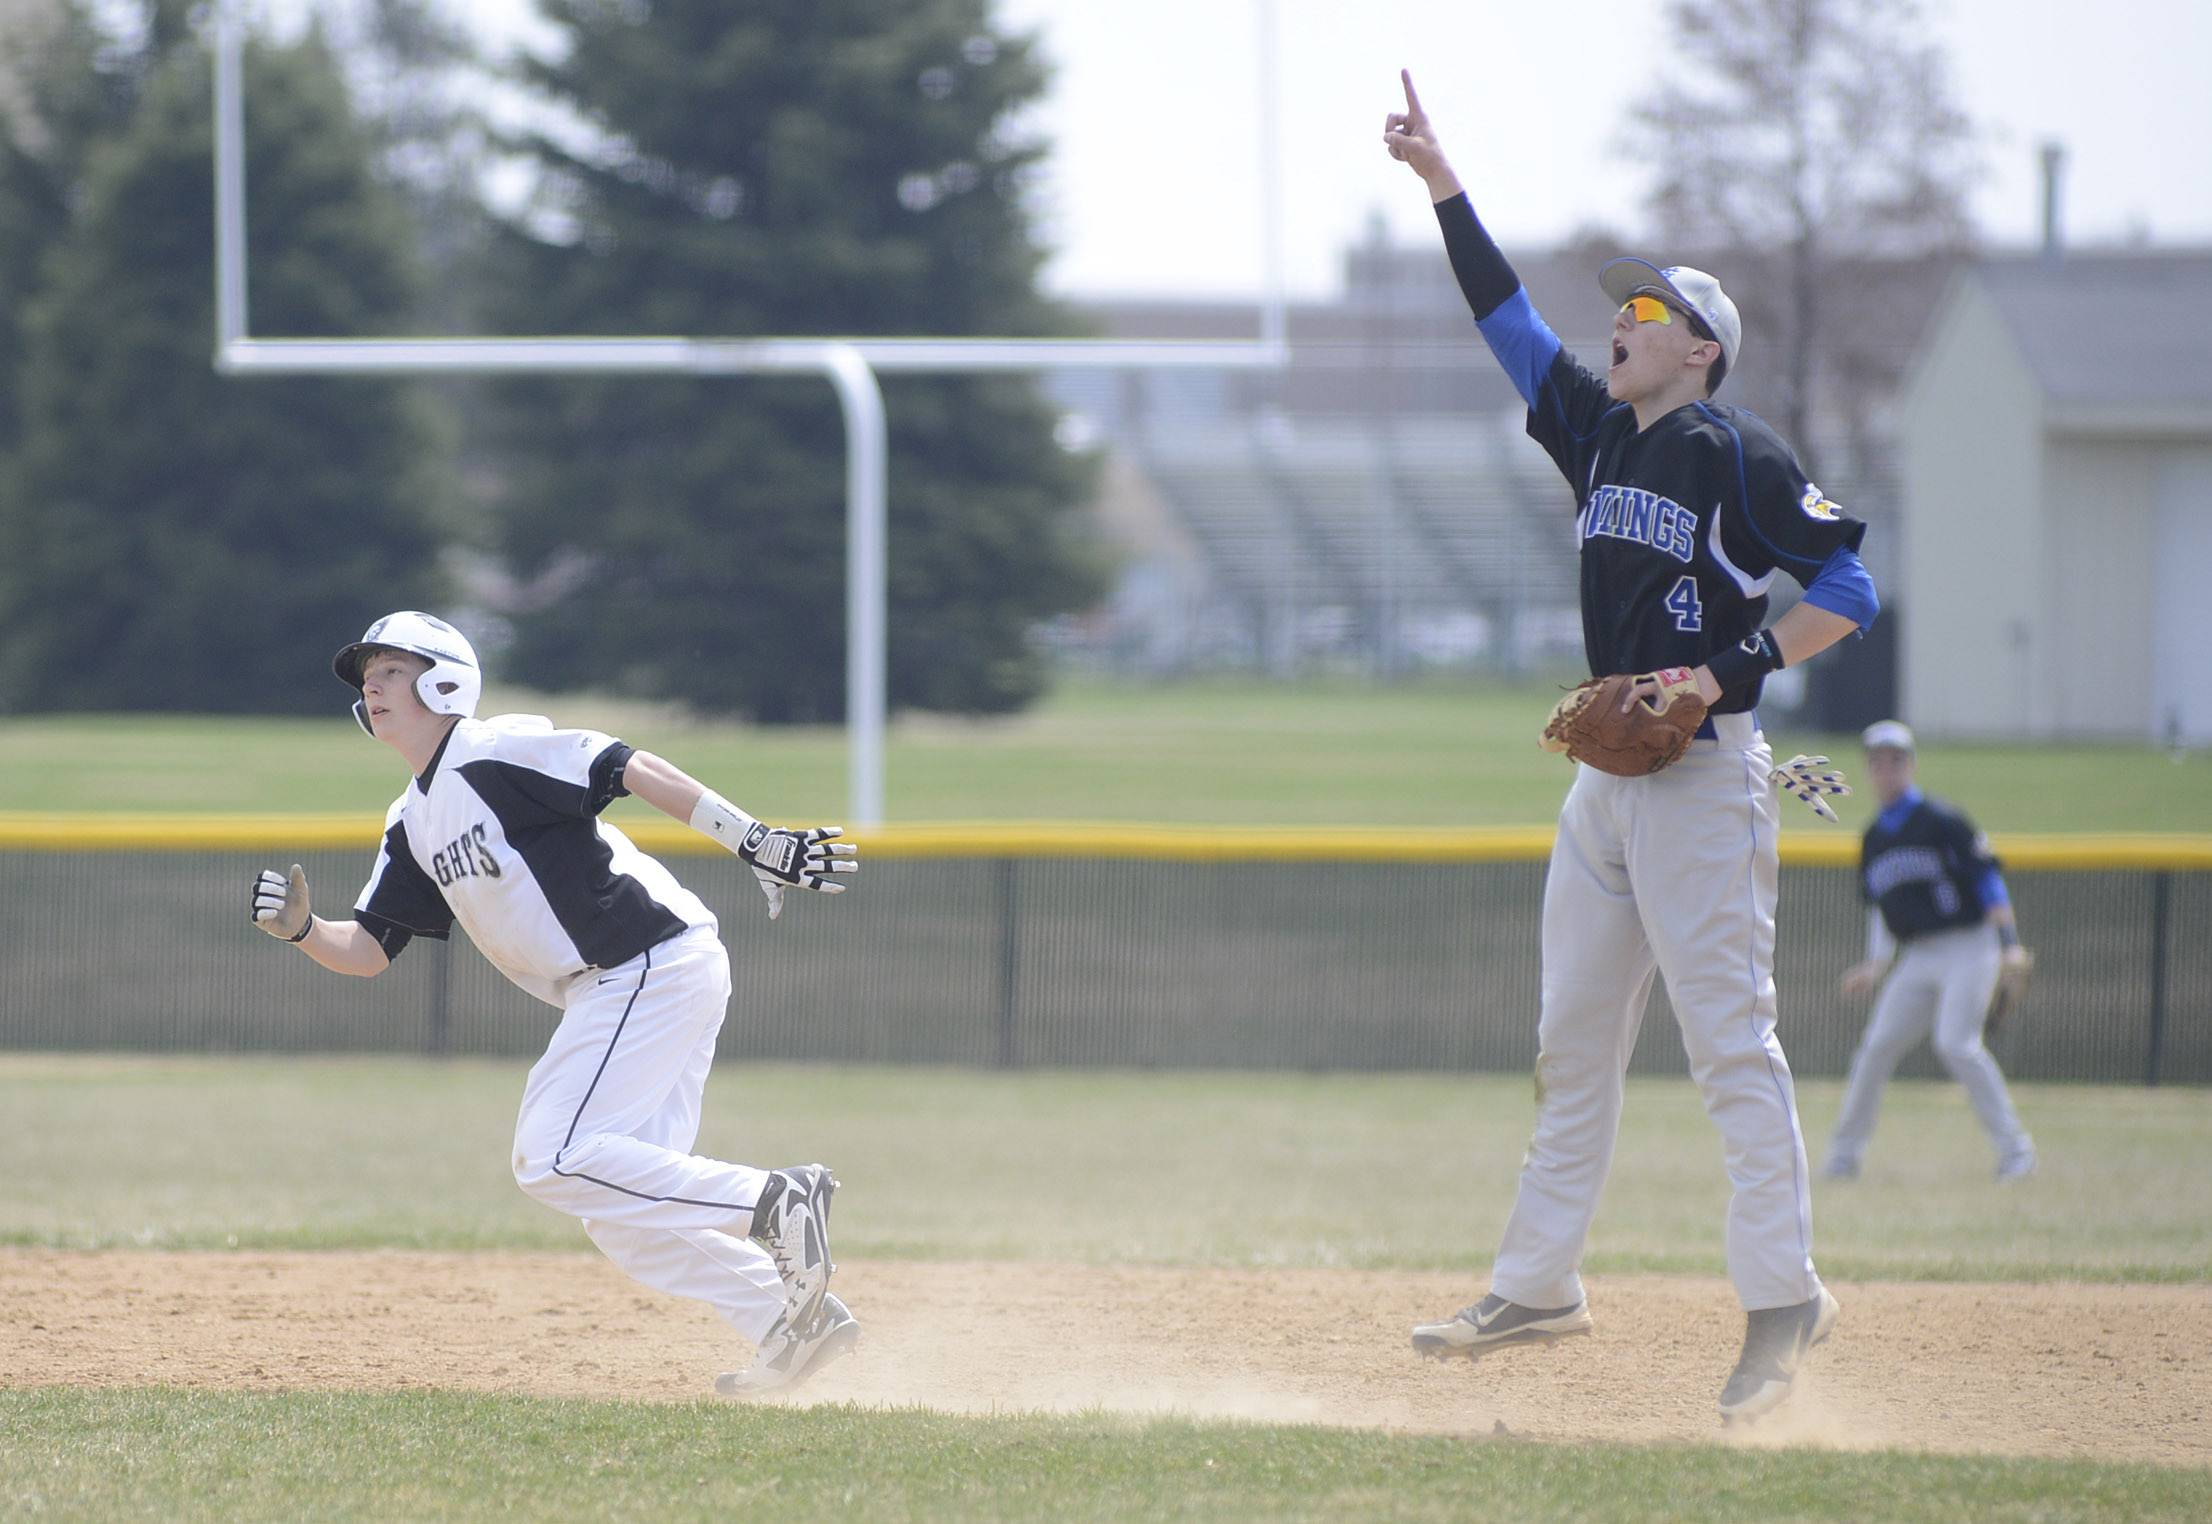 Kaneland's Jacob Bachio heads for second base while Geneva's Nick Porretto calls out the direction of a fly ball in the eighth inning on Saturday, April 19.